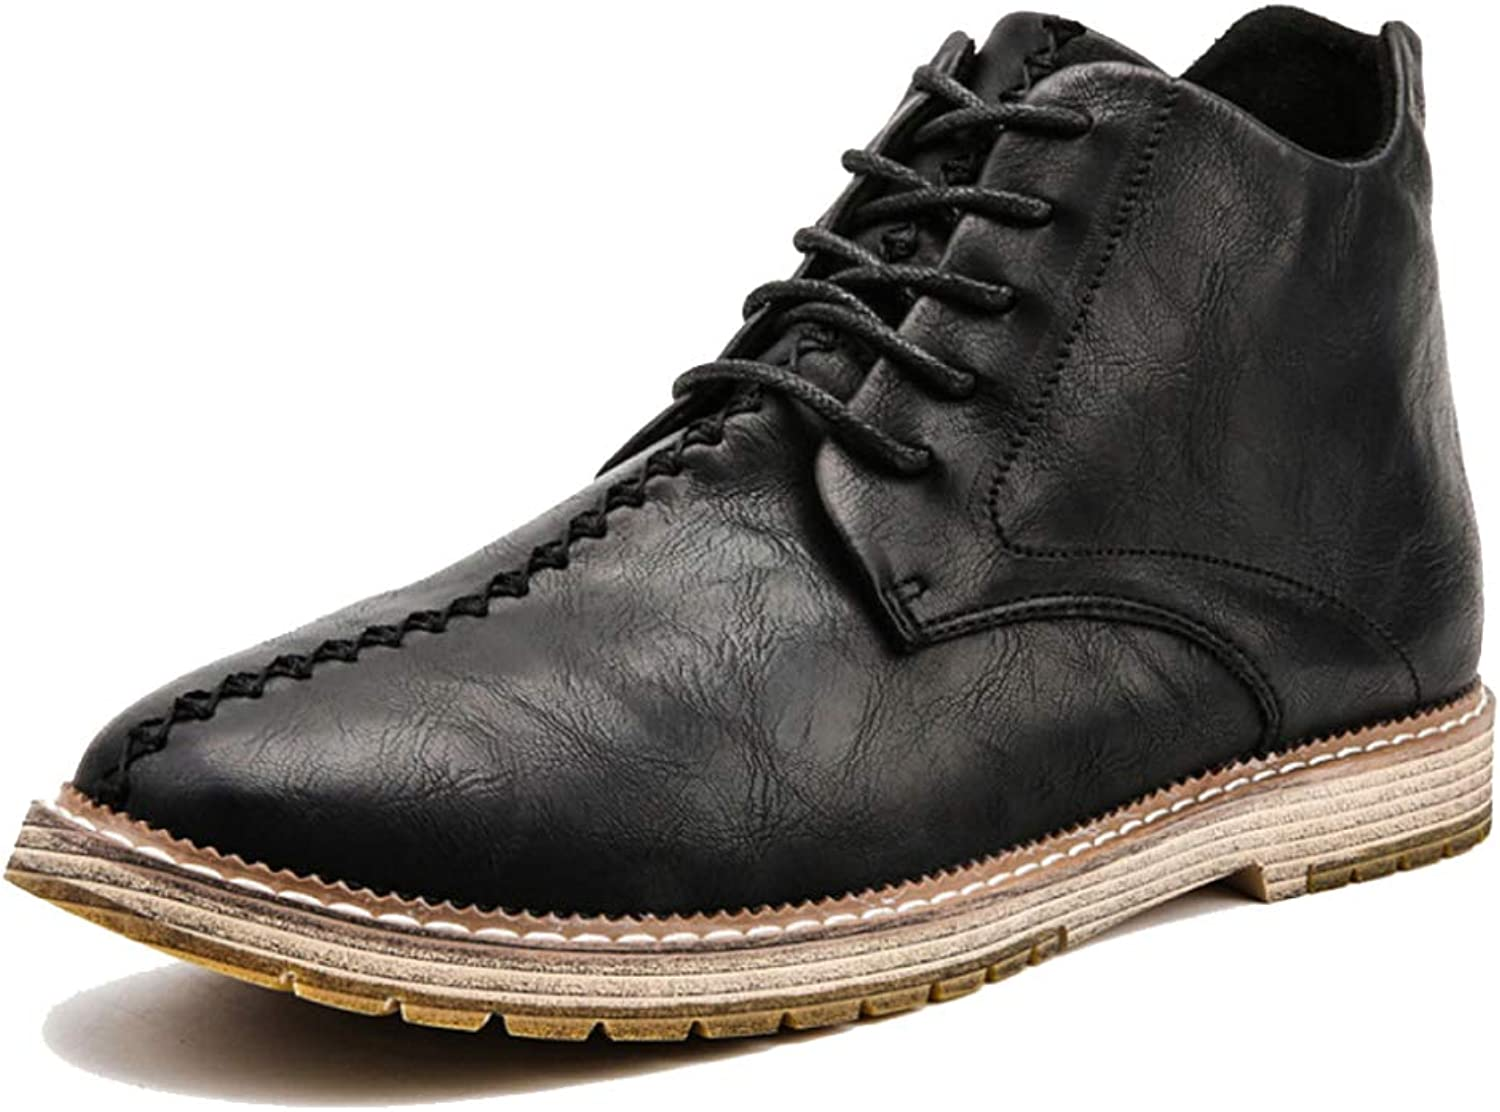 Men's Black Lace-up Dress High-top shoes, Pointed Heads Trend Large Size Martin Boots British Men's shoes